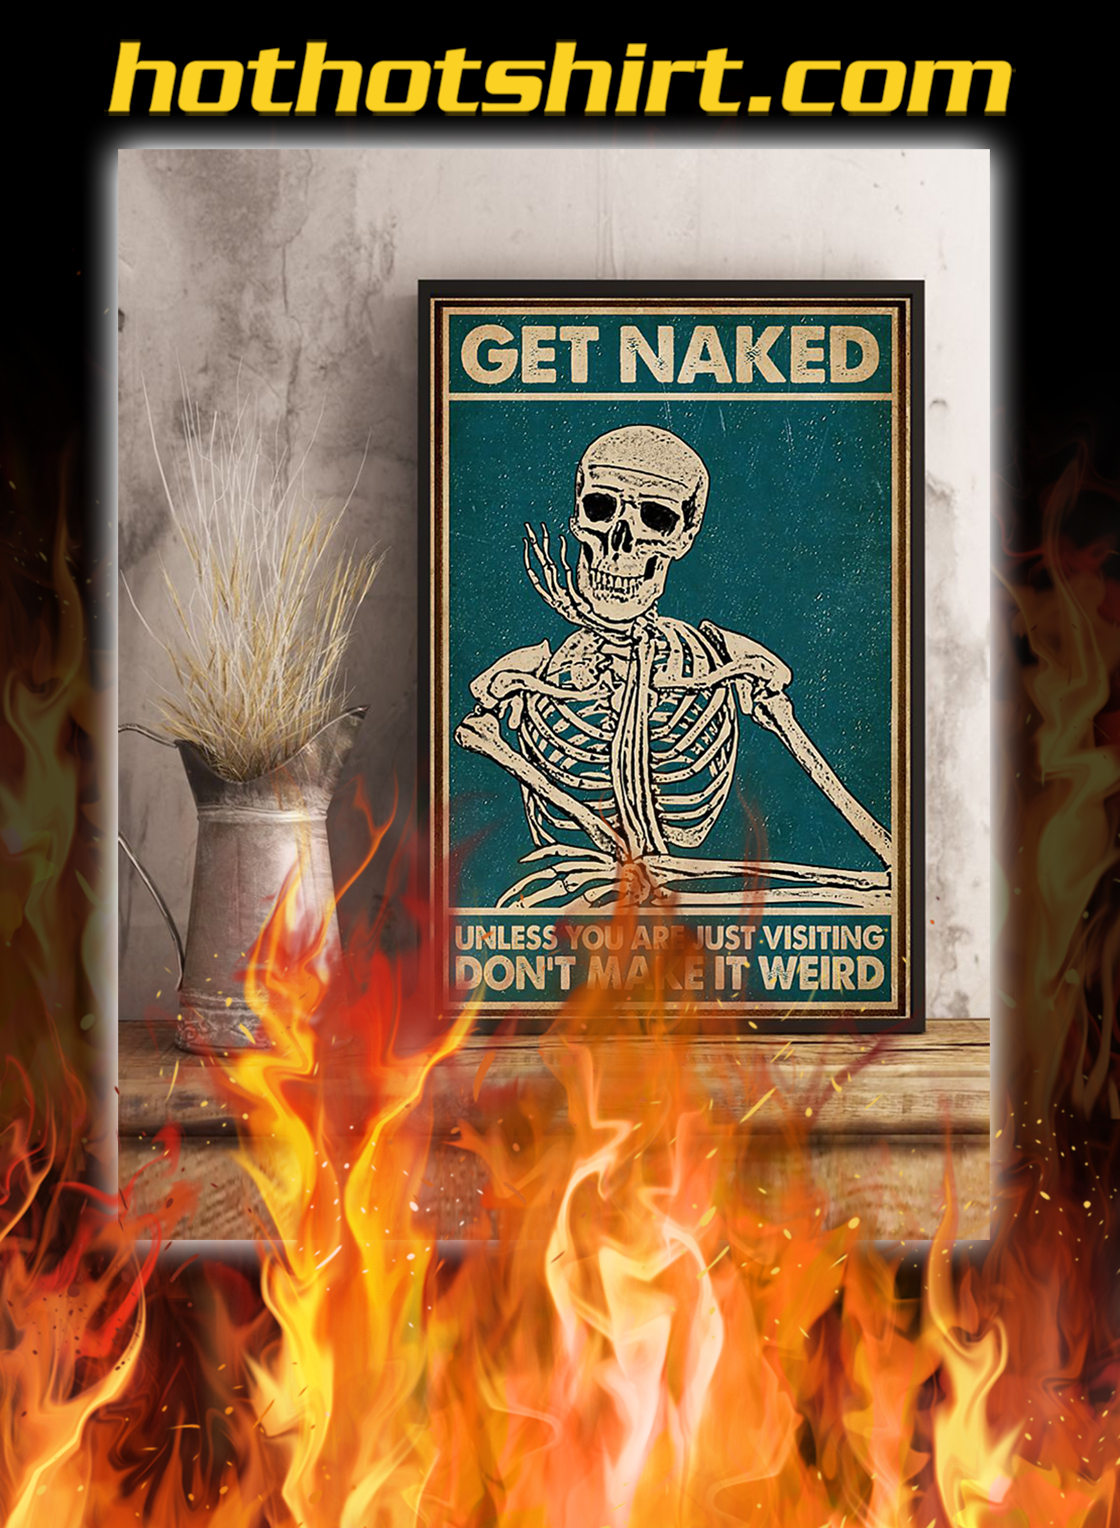 Get naked unless you are just visiting don't make it weird poster- A2